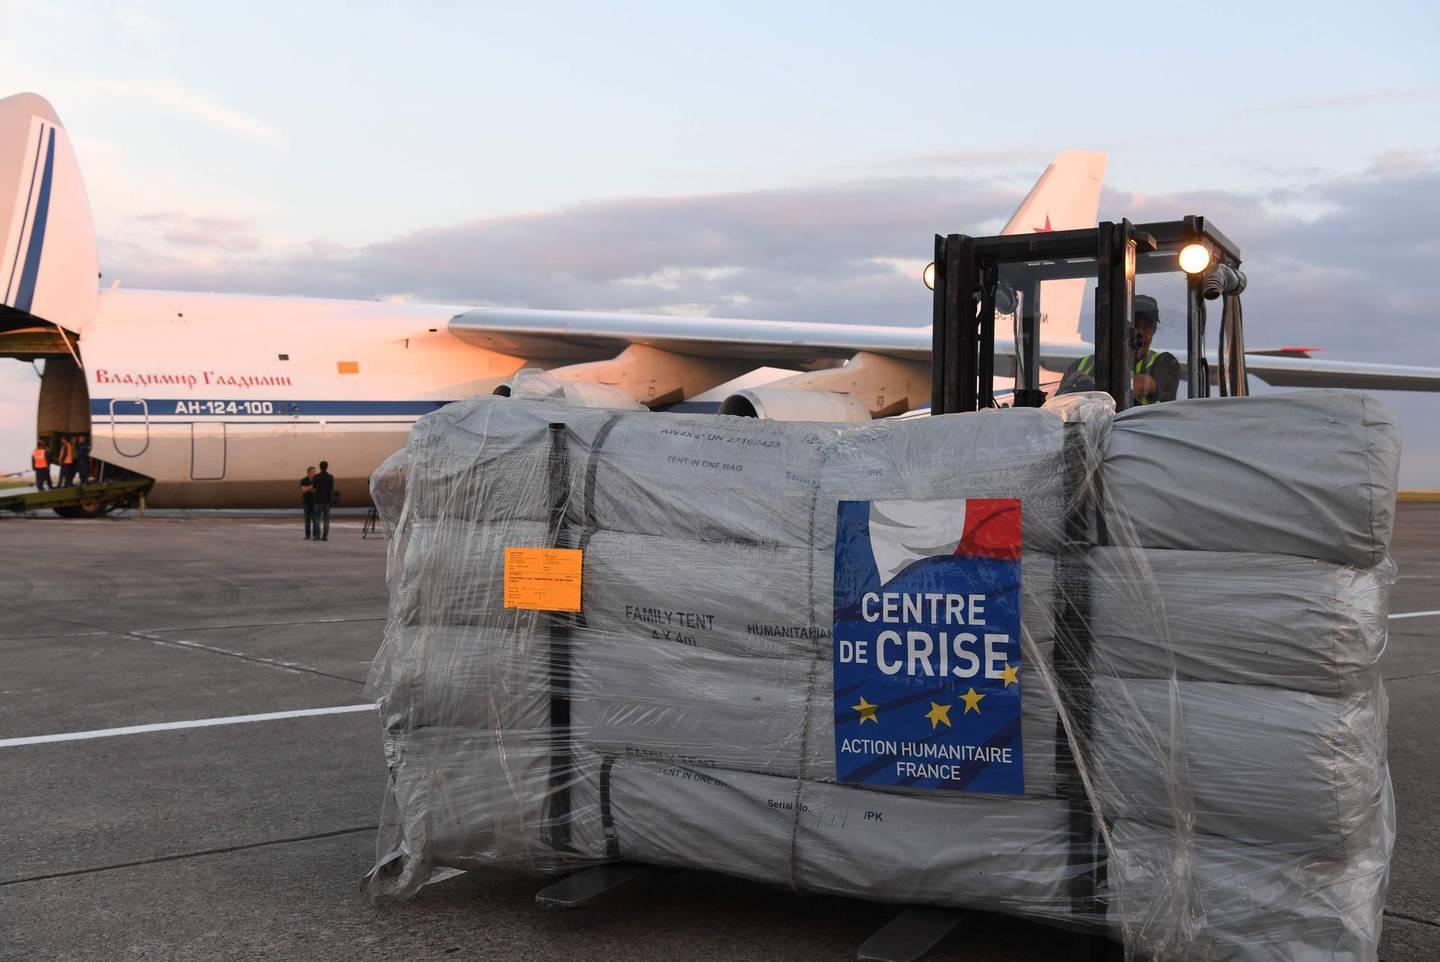 A forklift moves humanitarian supplies to be loaded onto Russian military officer stands by as an Antonov An-124 Ruslan - Widebody at the former Chateauroux-Deols Marcel Dassault Airport in central France on July 20, 2018.  France and Russia are jointly delivering humanitarian aid to the former Syrian rebel enclave of Eastern Ghouta, the French Presidency said in a statement with Russia on July 20. A Russian cargo plane arrived late in Chateauroux to load 50 tons of medical equipment and essential goods provided by France, said an AFP videographer at the scene, to be transported to the former rebel area which was recaptured by Syrian troops this Spring.  / AFP / Alain JOCARD